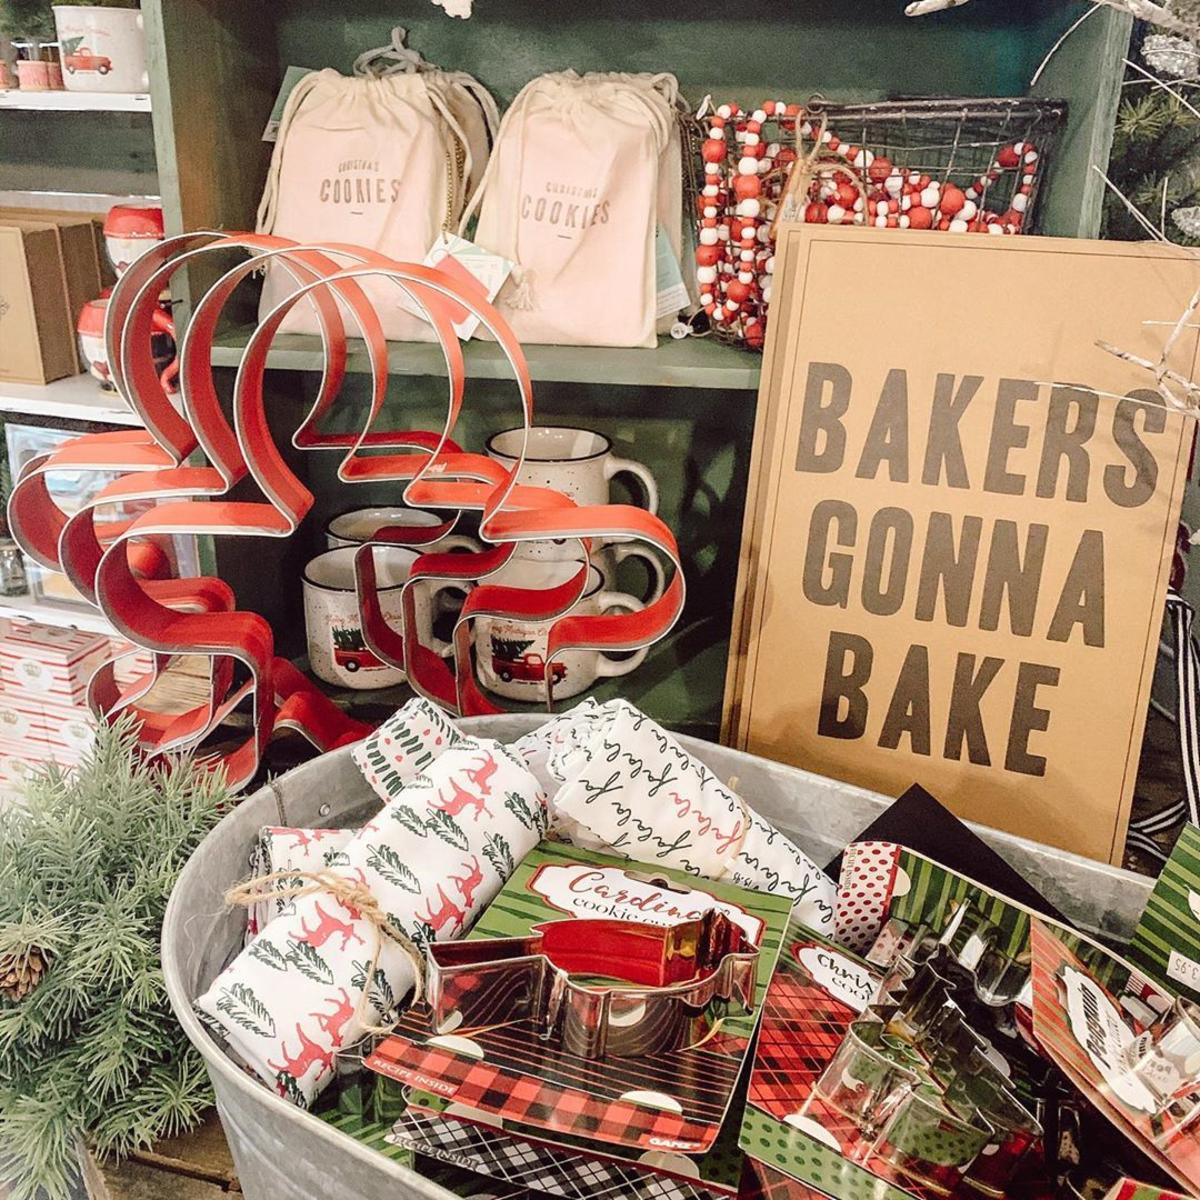 Holiday baking items, gifts, and goodies at Serendipity Road in Midland